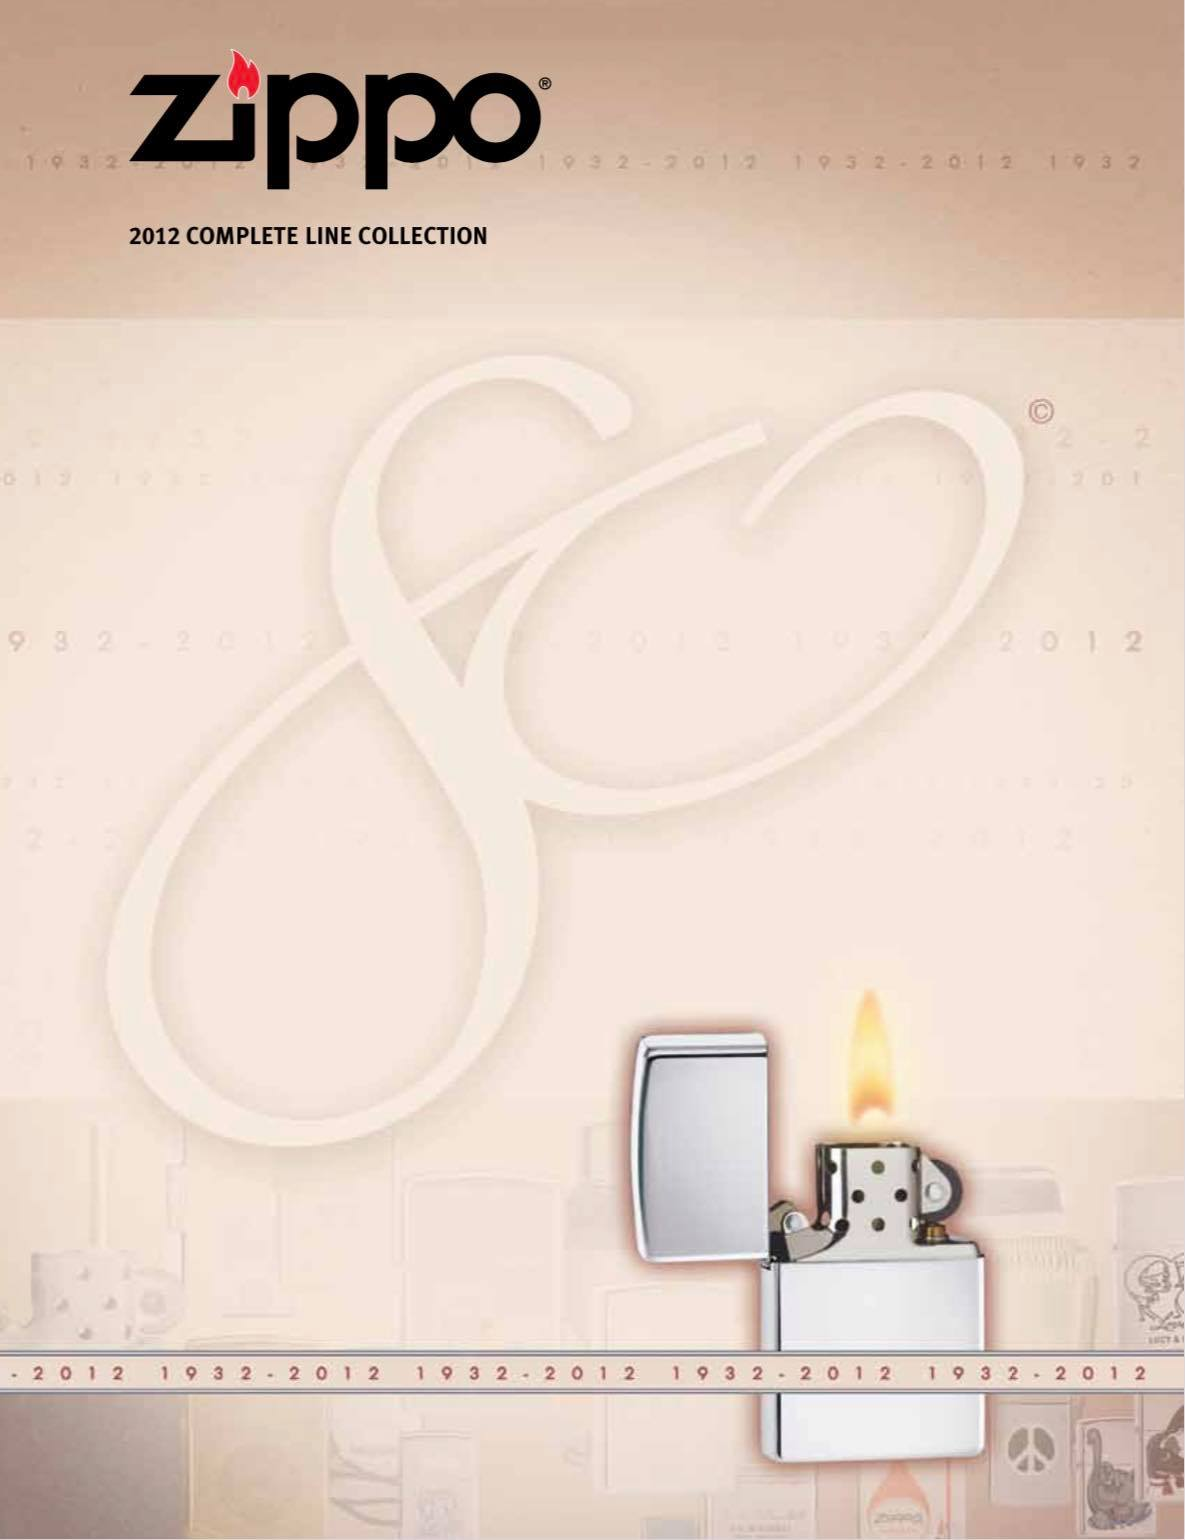 Zippo 2012 Complete Line Collection US